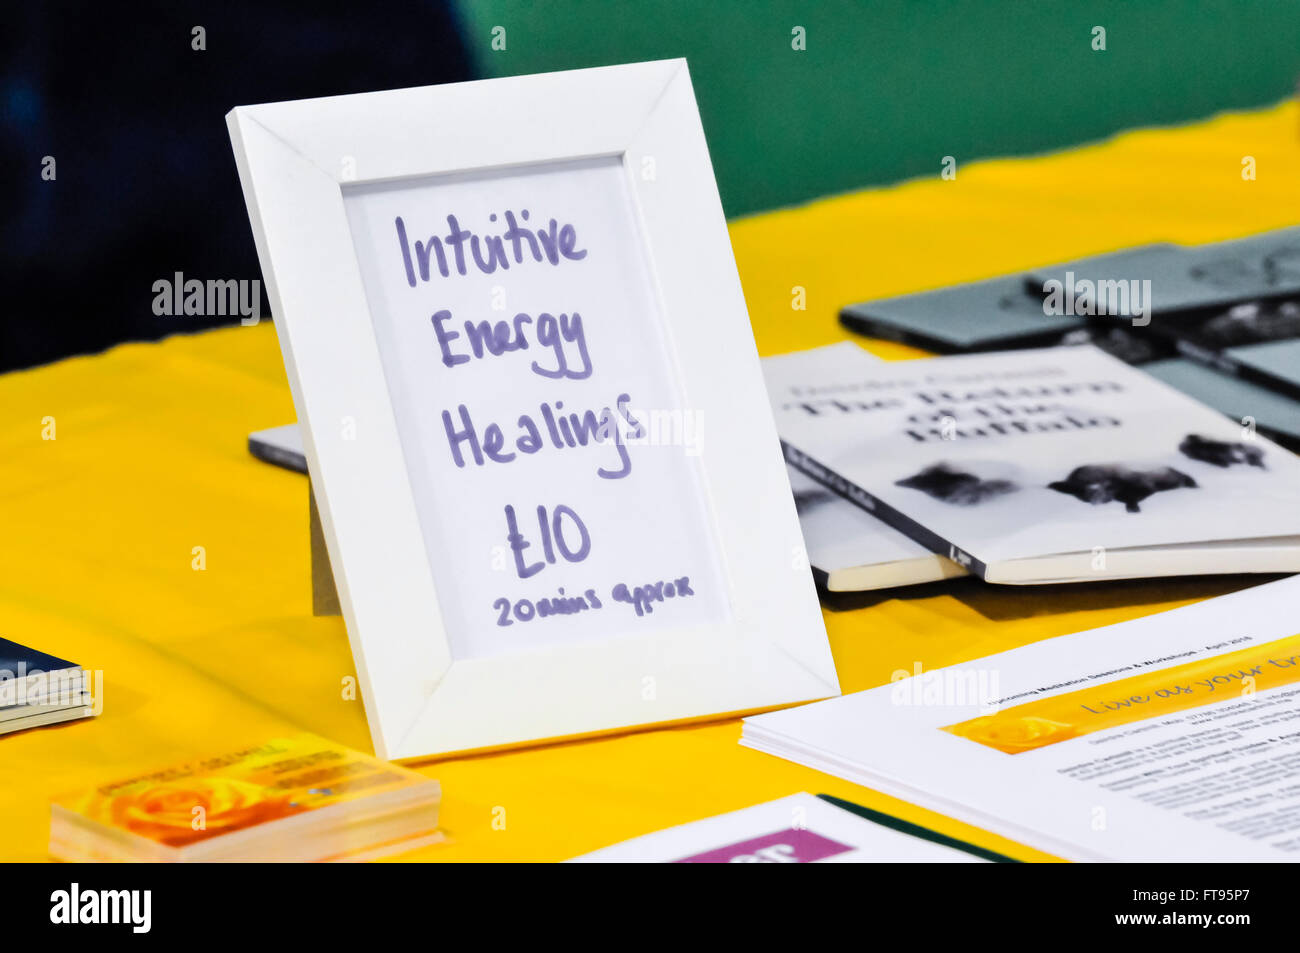 A sign advertises Intuitive Energy Healings for £10 at a holistic and spiritual fair. - Stock Image